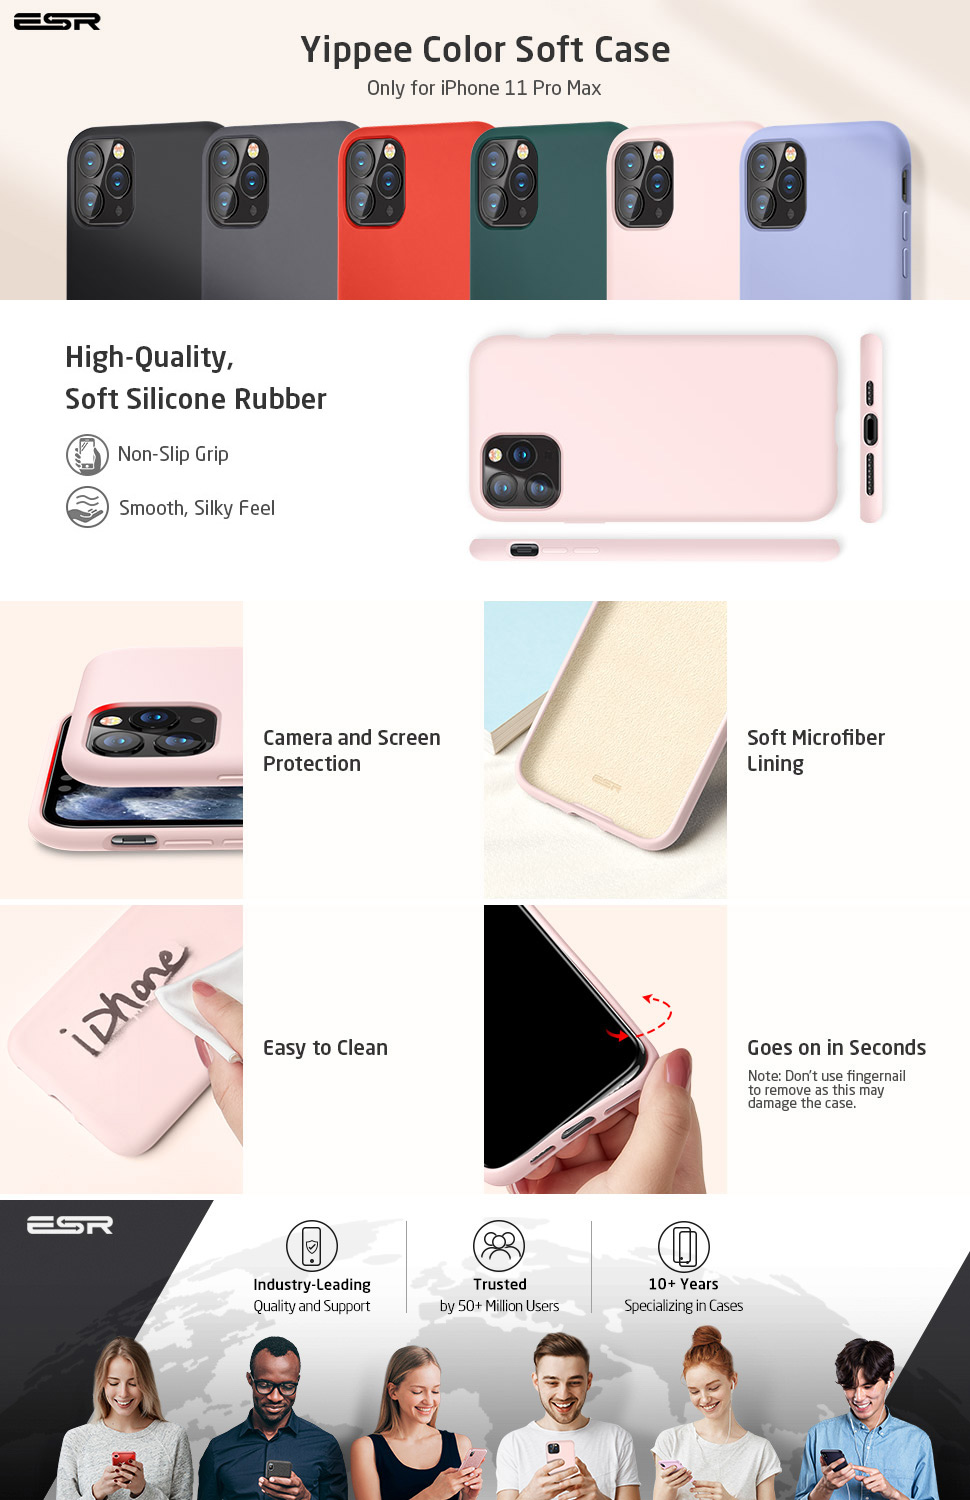 ESR Yippee Color case for iPhone 11 Pro Max, Gohub Shop